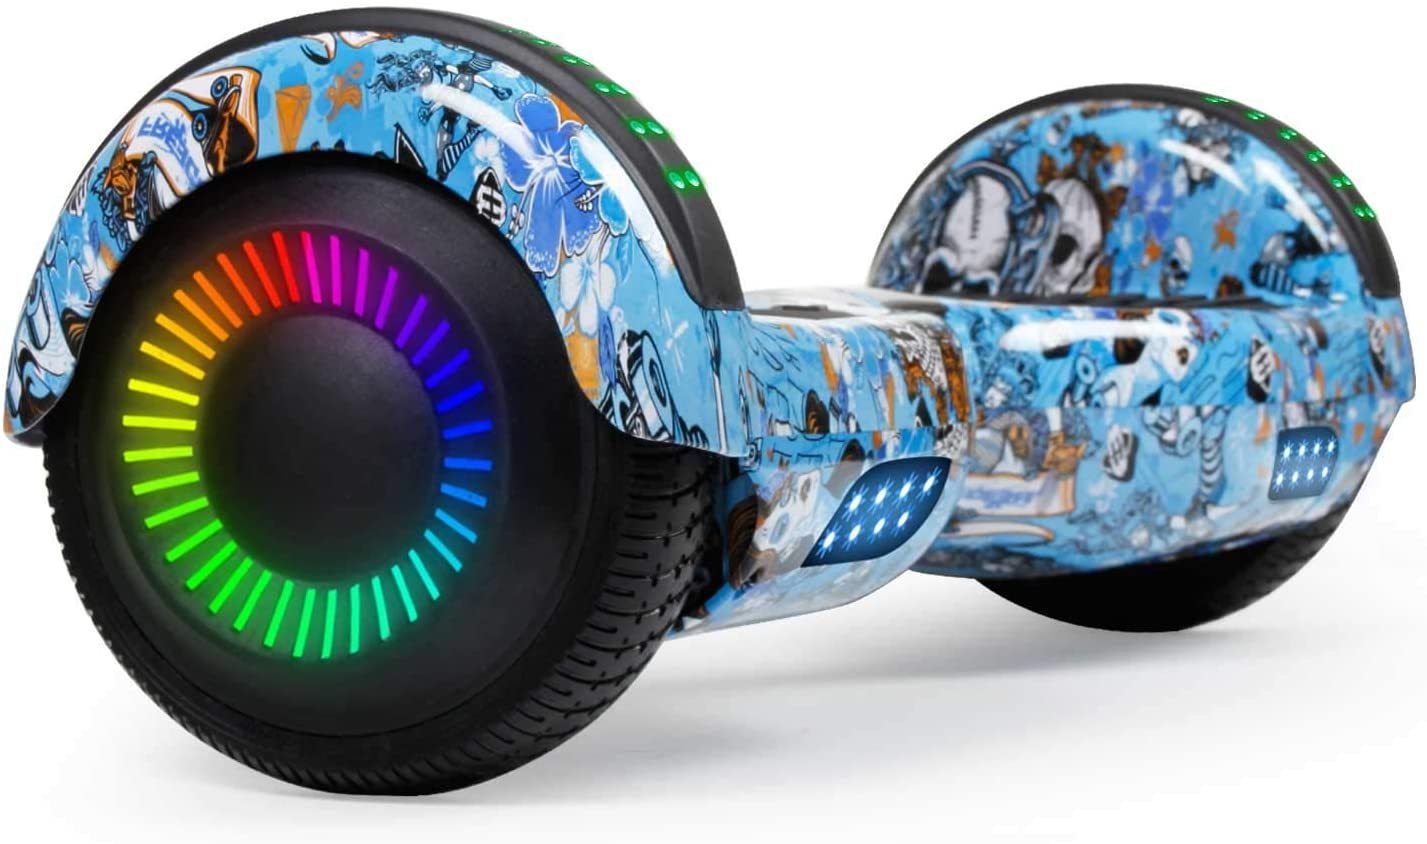 https://www.amazon.com/SISIGAD-Hoverboard-Self-Balancing-Bluetooth-Speaker/dp/B08FZFSLLQ?tag=hoverboard2-20